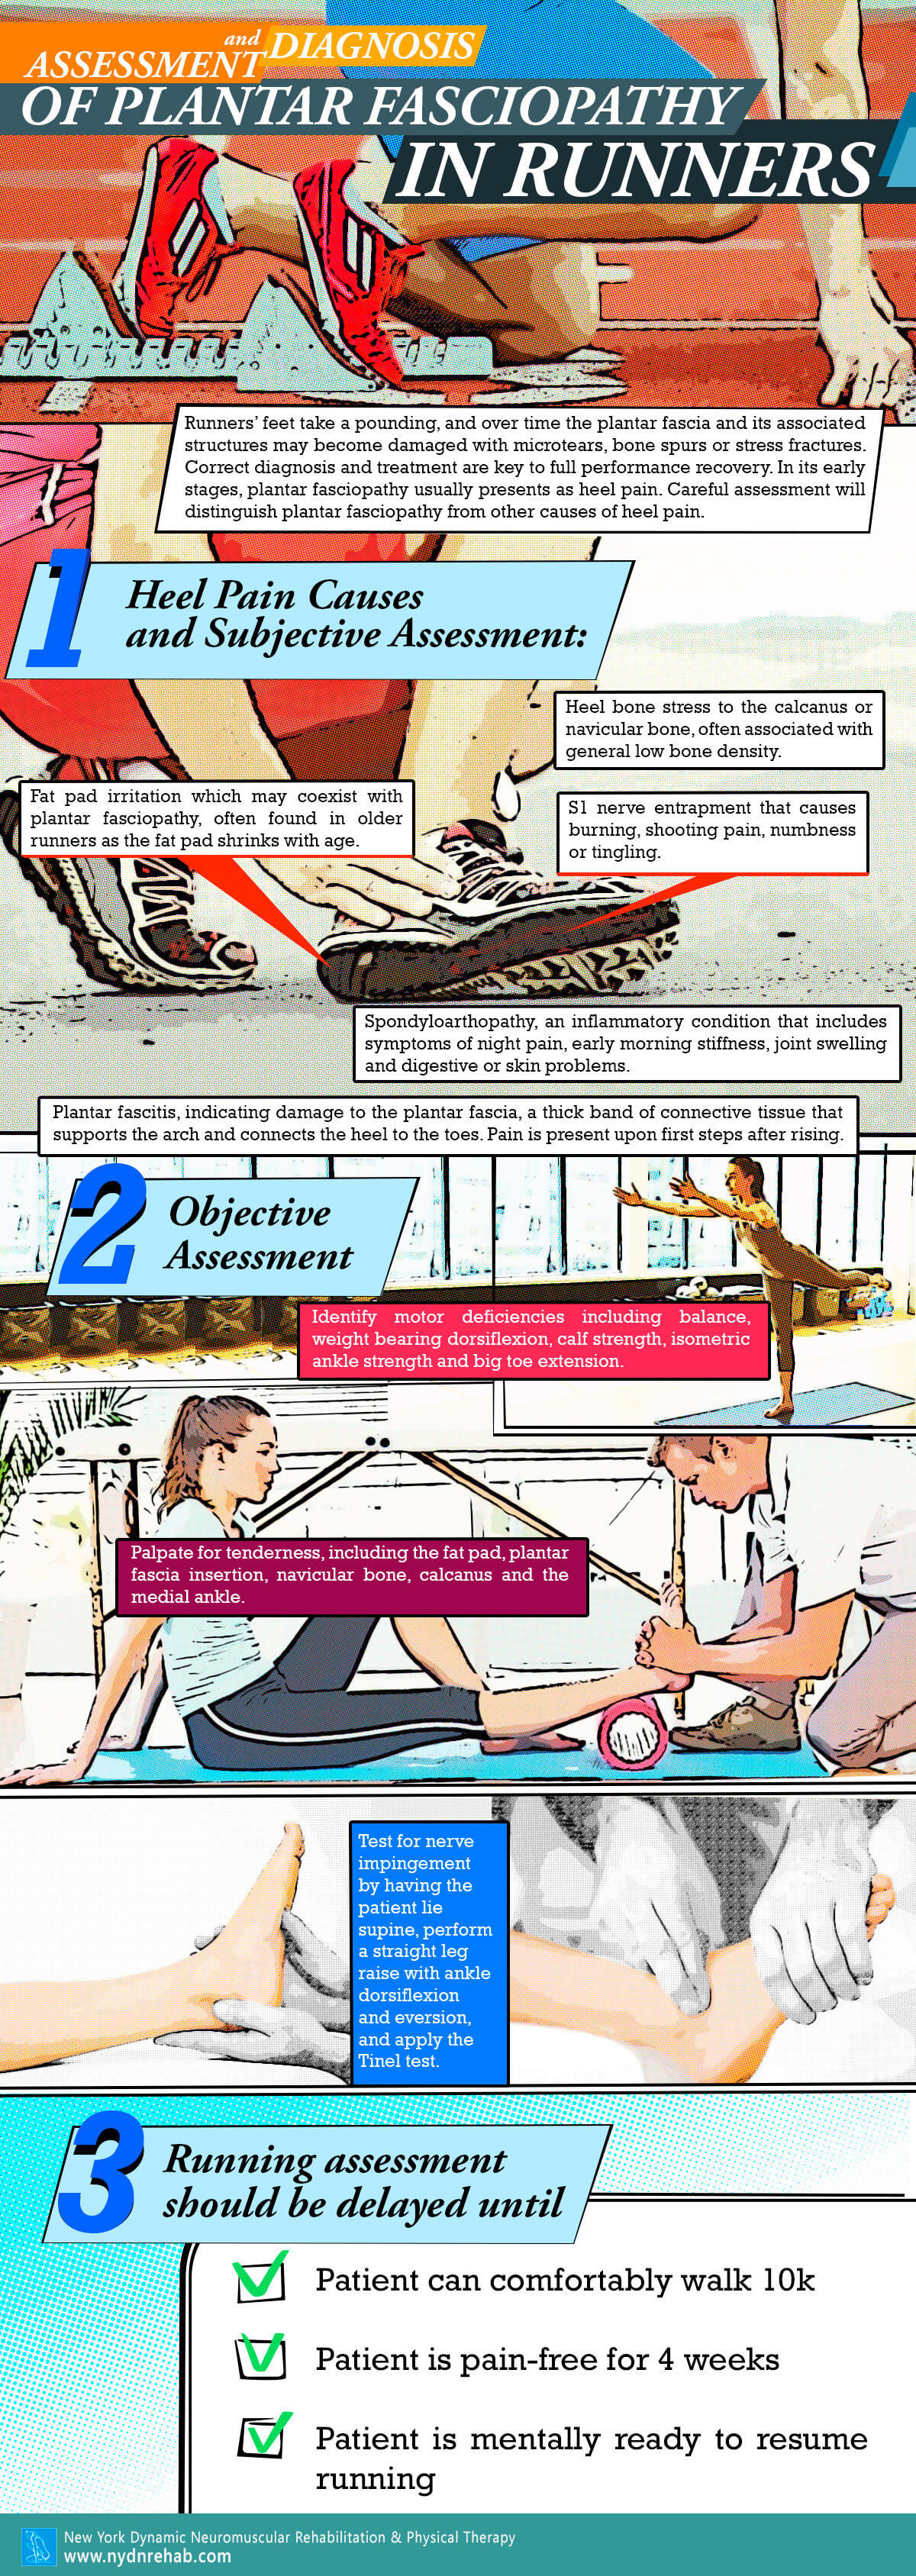 Assessment-and-Diagnosis-of-Plantar-Fasciopathy-in-Runners-infographic-plaza